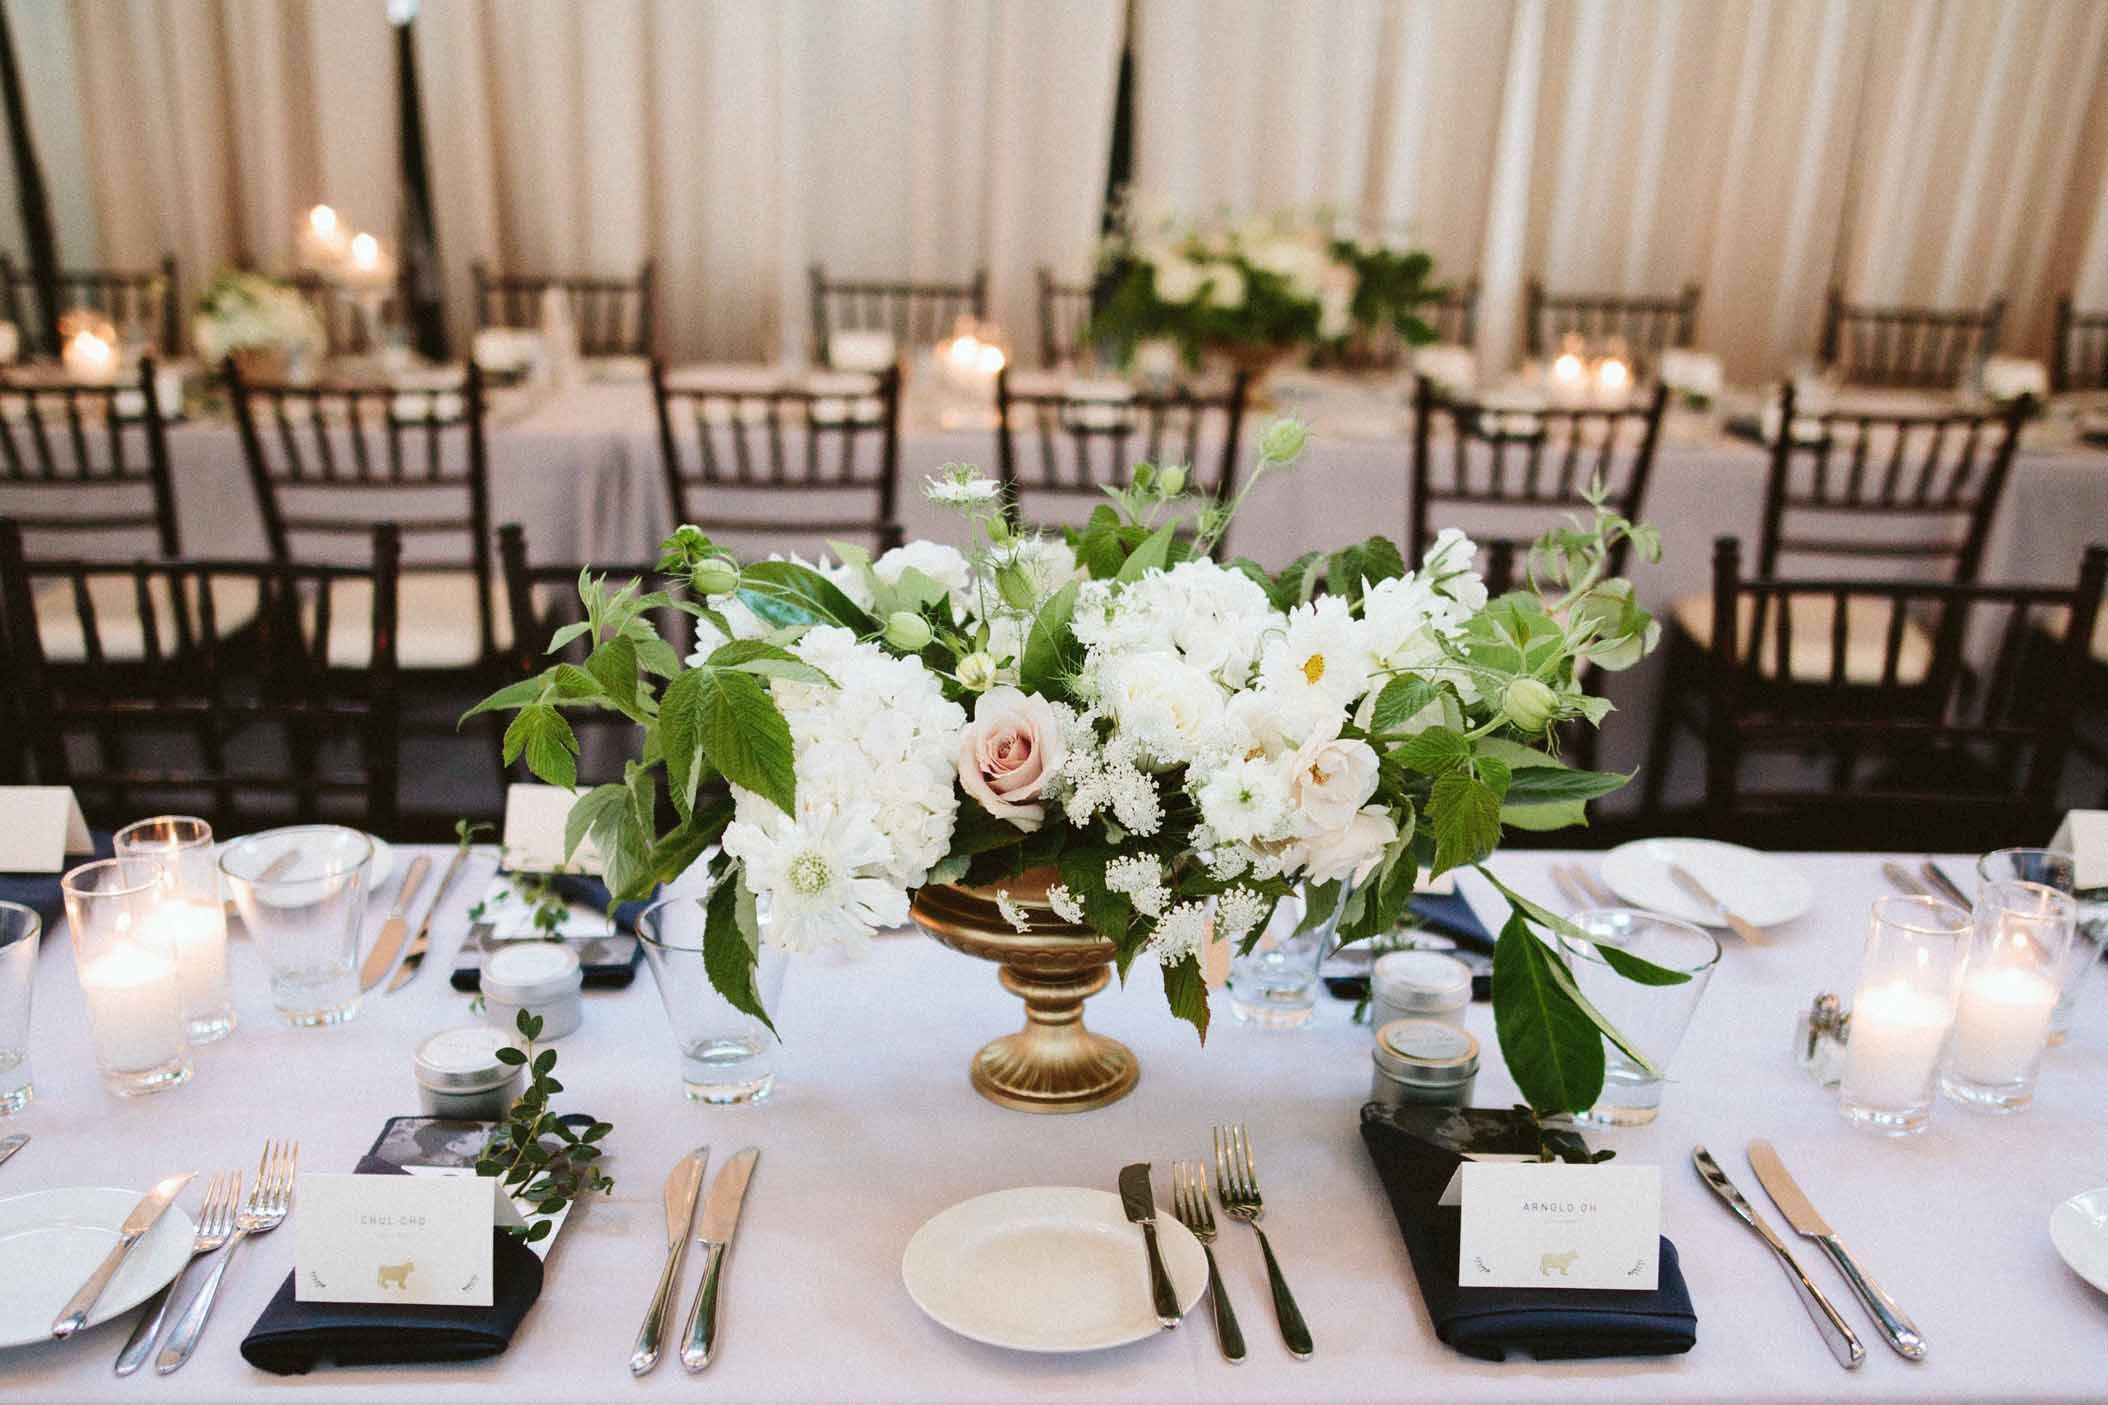 Flora Nova Design Seattle wedding reception centerpiece with white floral and greens